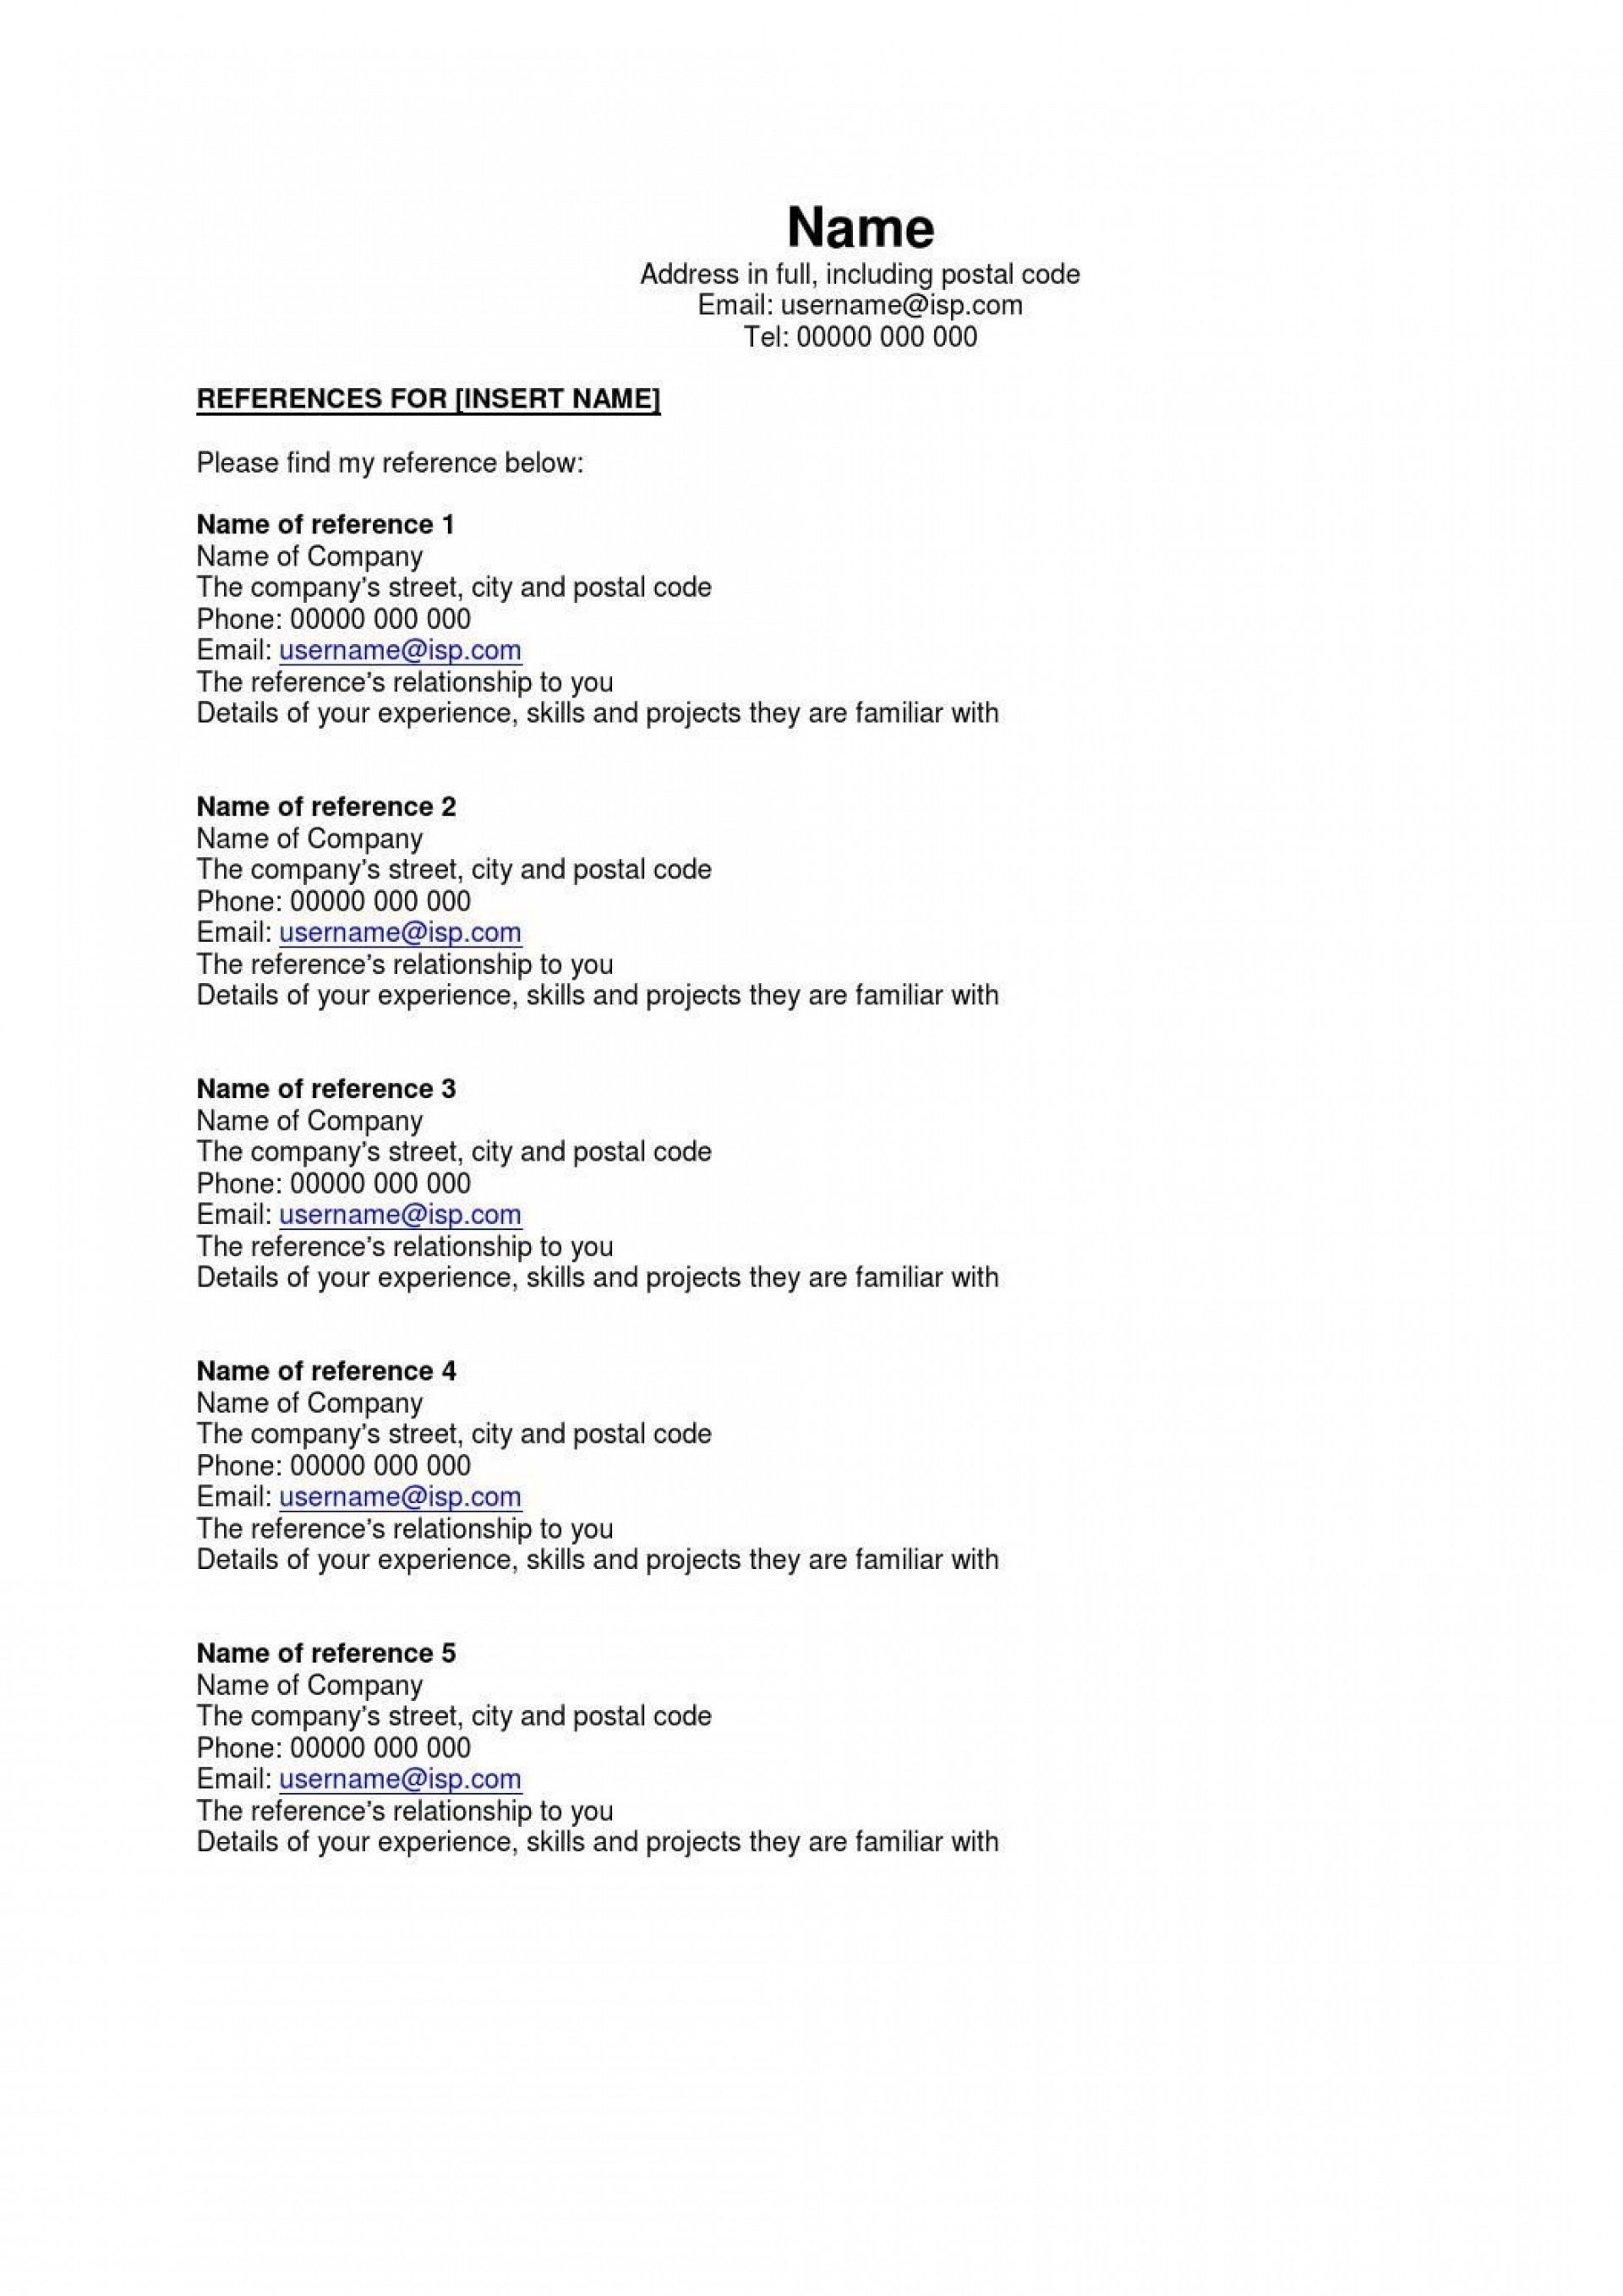 002 Astounding Resume Reference List Template Microsoft Word High Resolution 1920